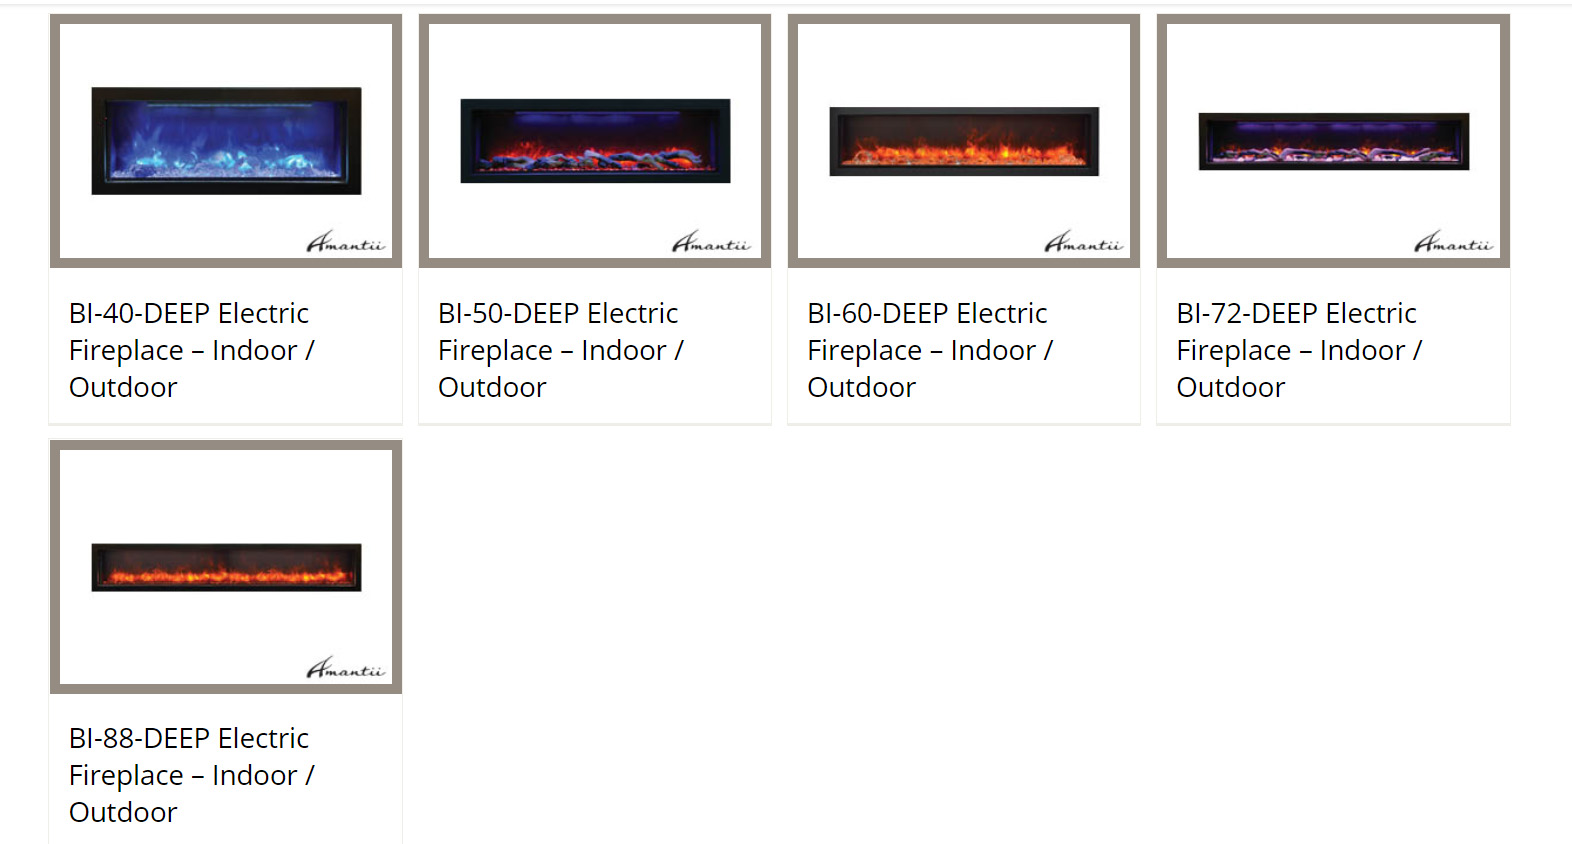 Amantii Panorama Deep Built In Indoor Outdoor Electric Fireplace With Log Set And Fire Ice Media Choice Of Size